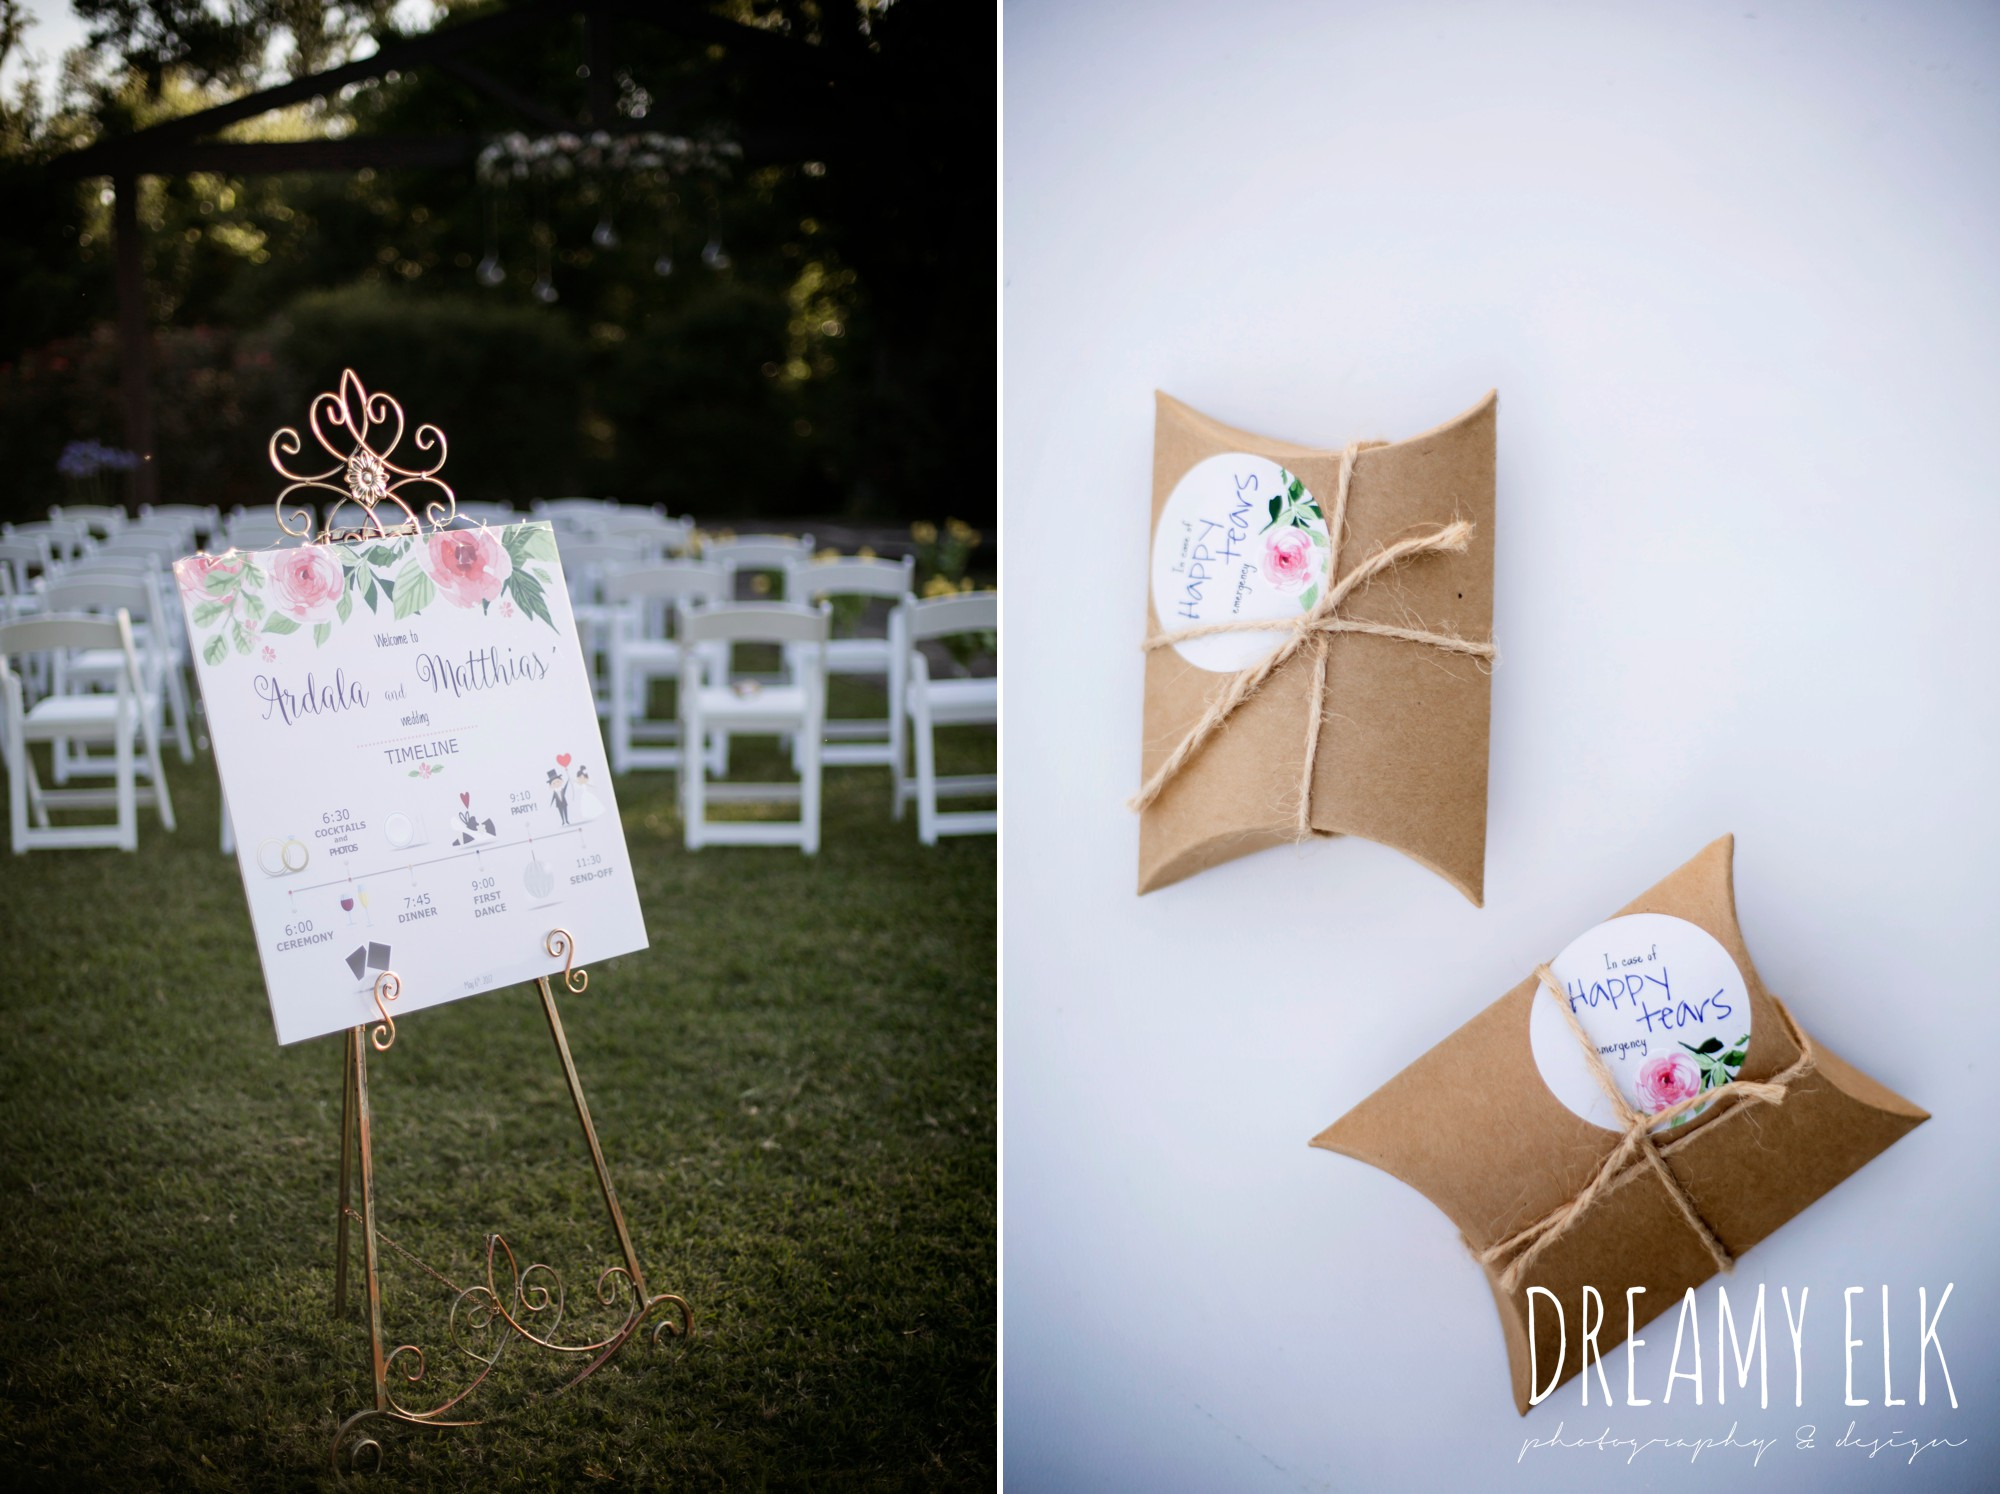 ceremony setup, in case of happy tears, outdoor april spring wedding photo, double creek crossing, college station, texas, austin wedding photographer {dreamy elk photography and design}